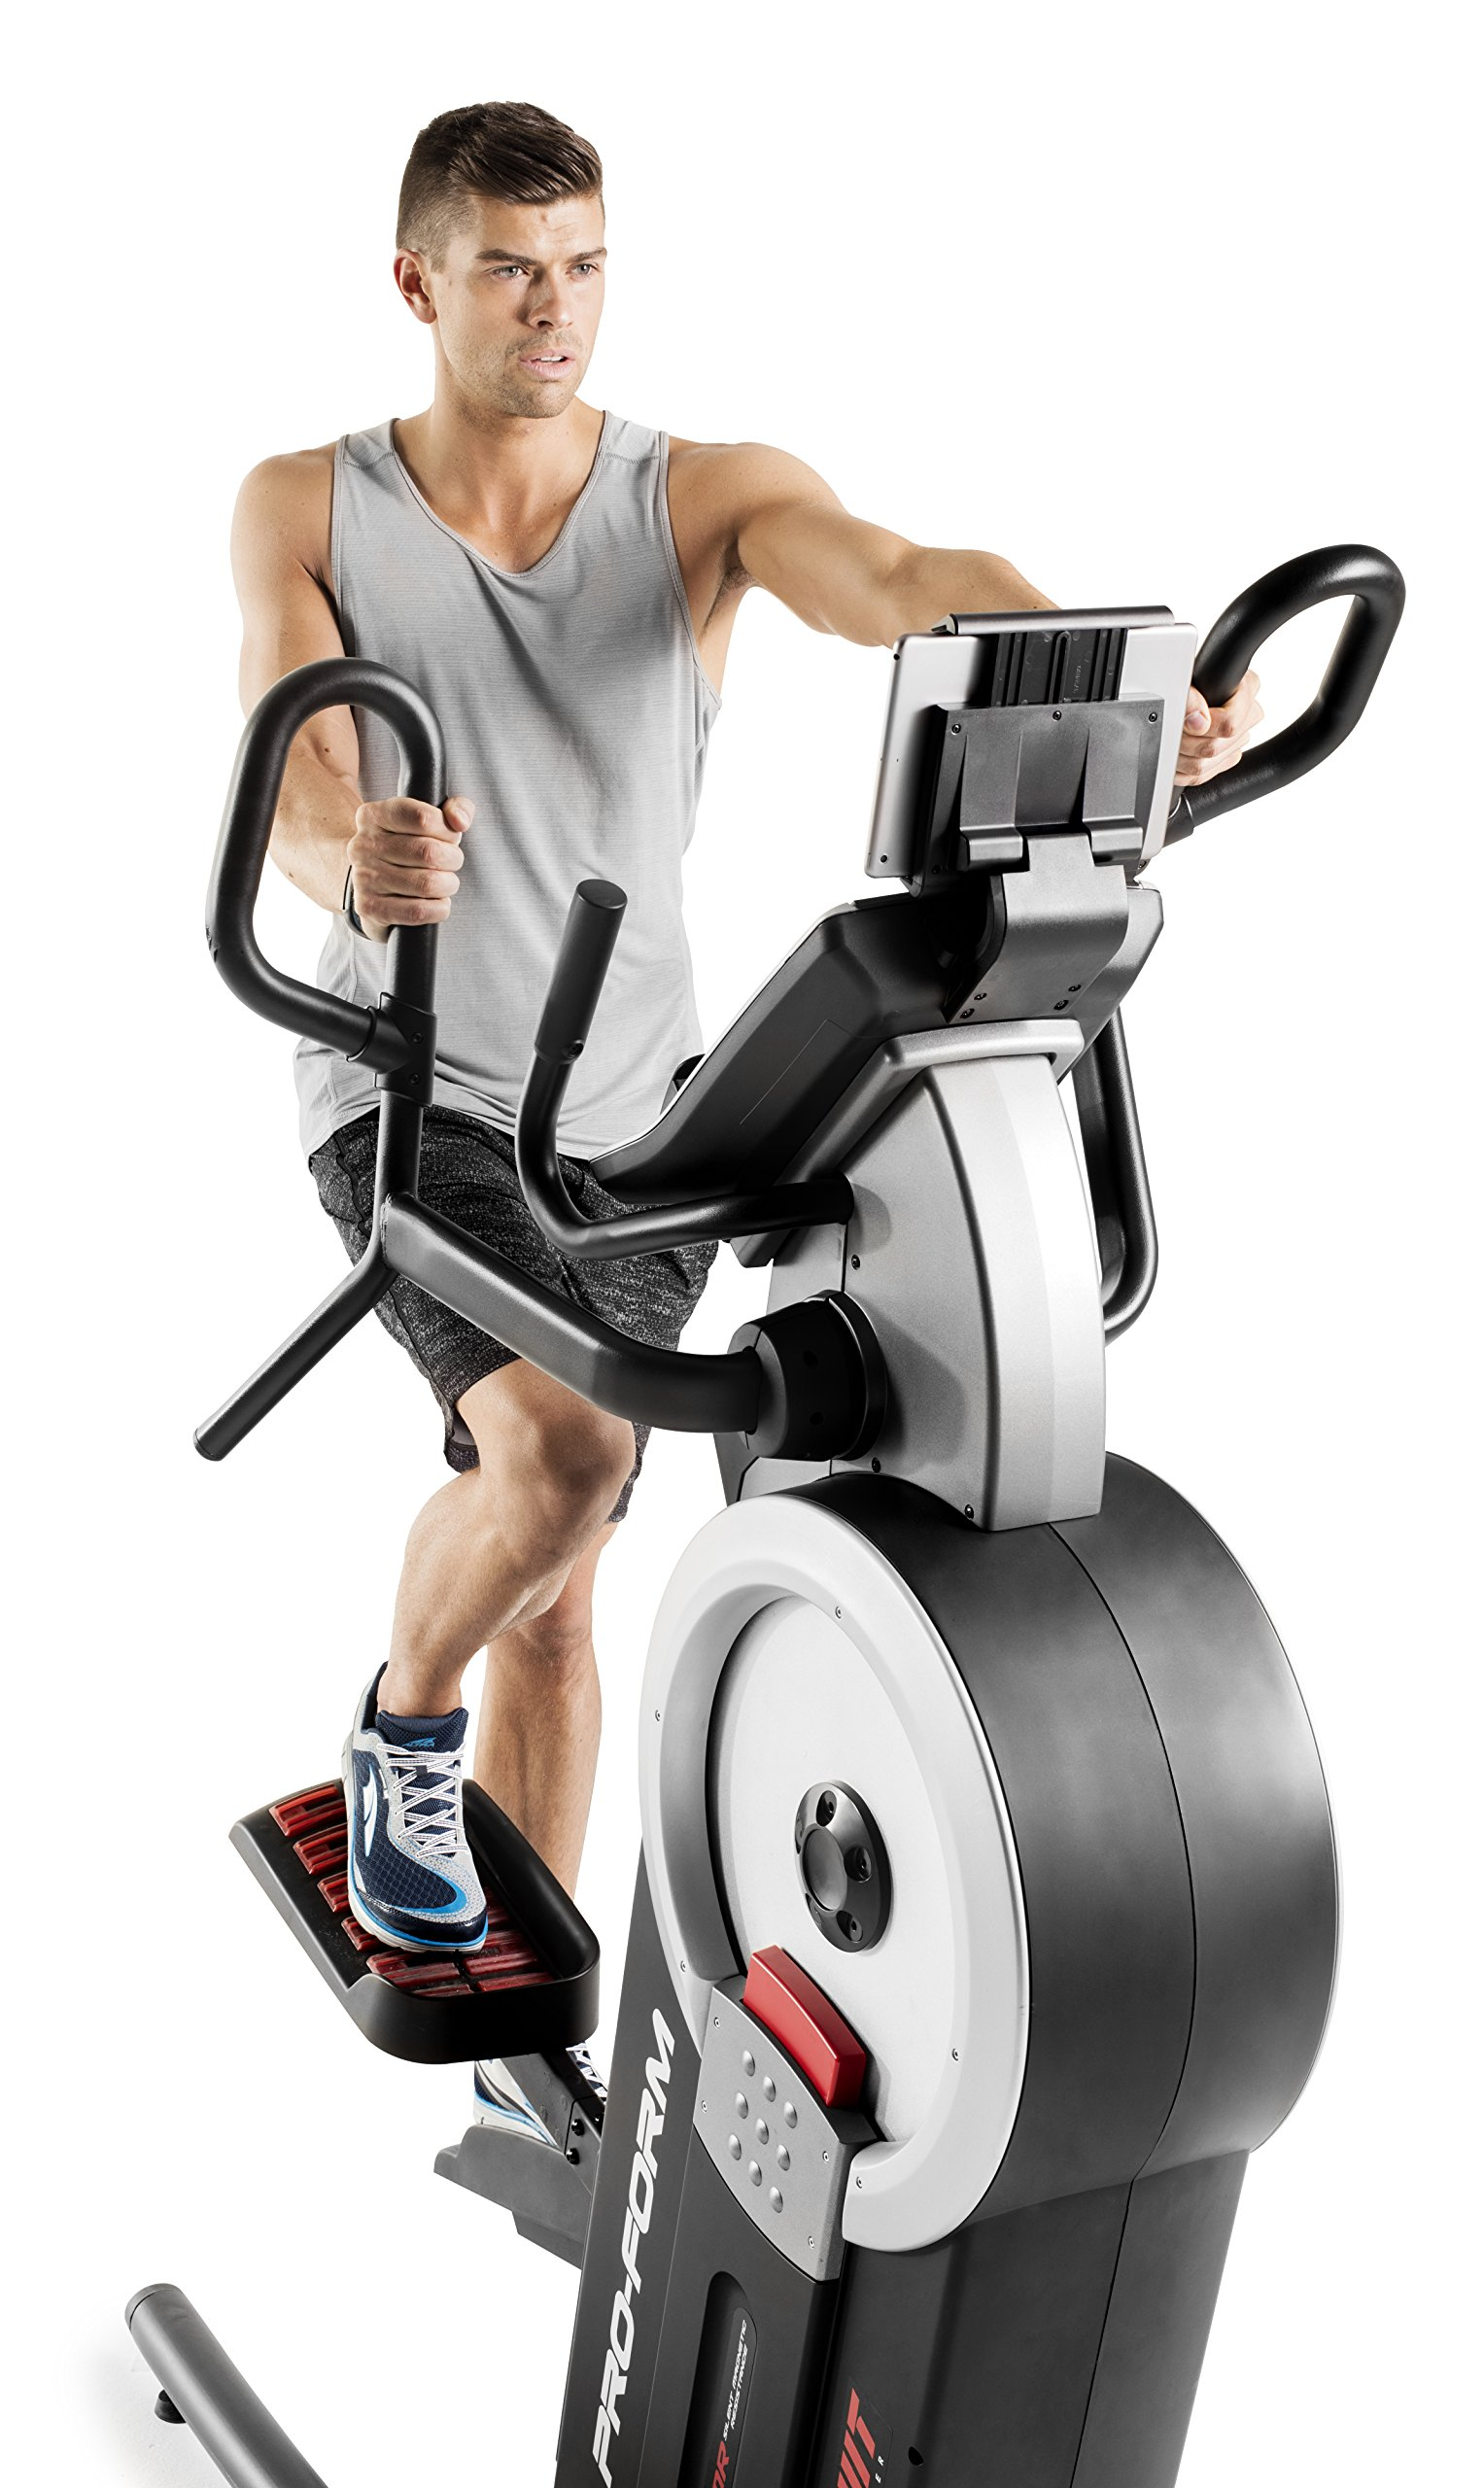 ProForm Cardio HIIT Elliptical Trainer by ProForm (Image #26)